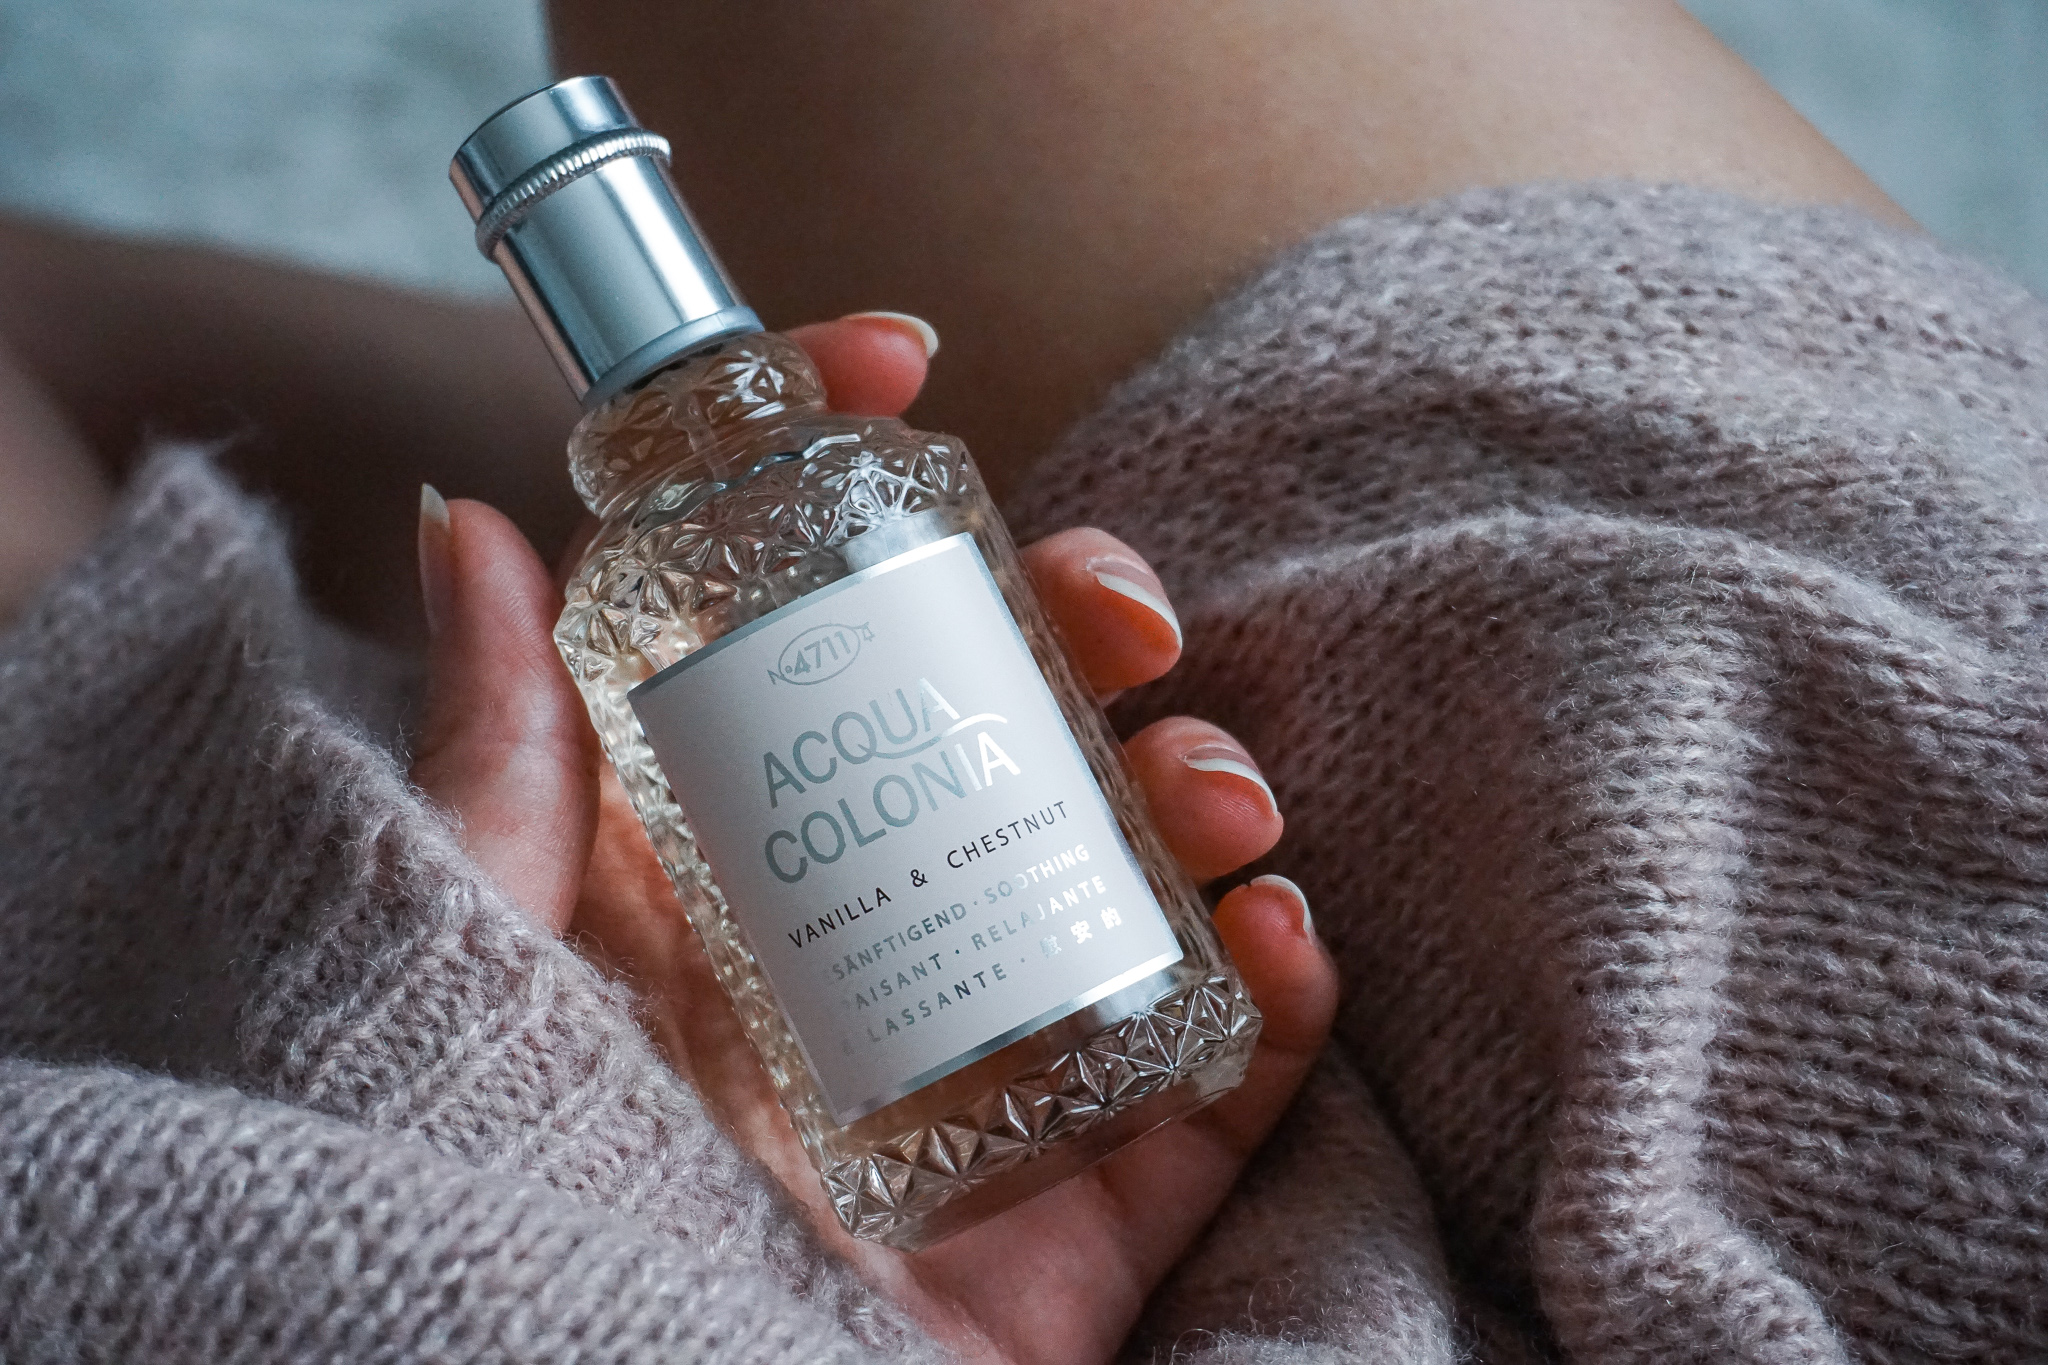 N°4711 Acqua Colonia - Blackberry & Cocoa und Vanilla & Chestnut